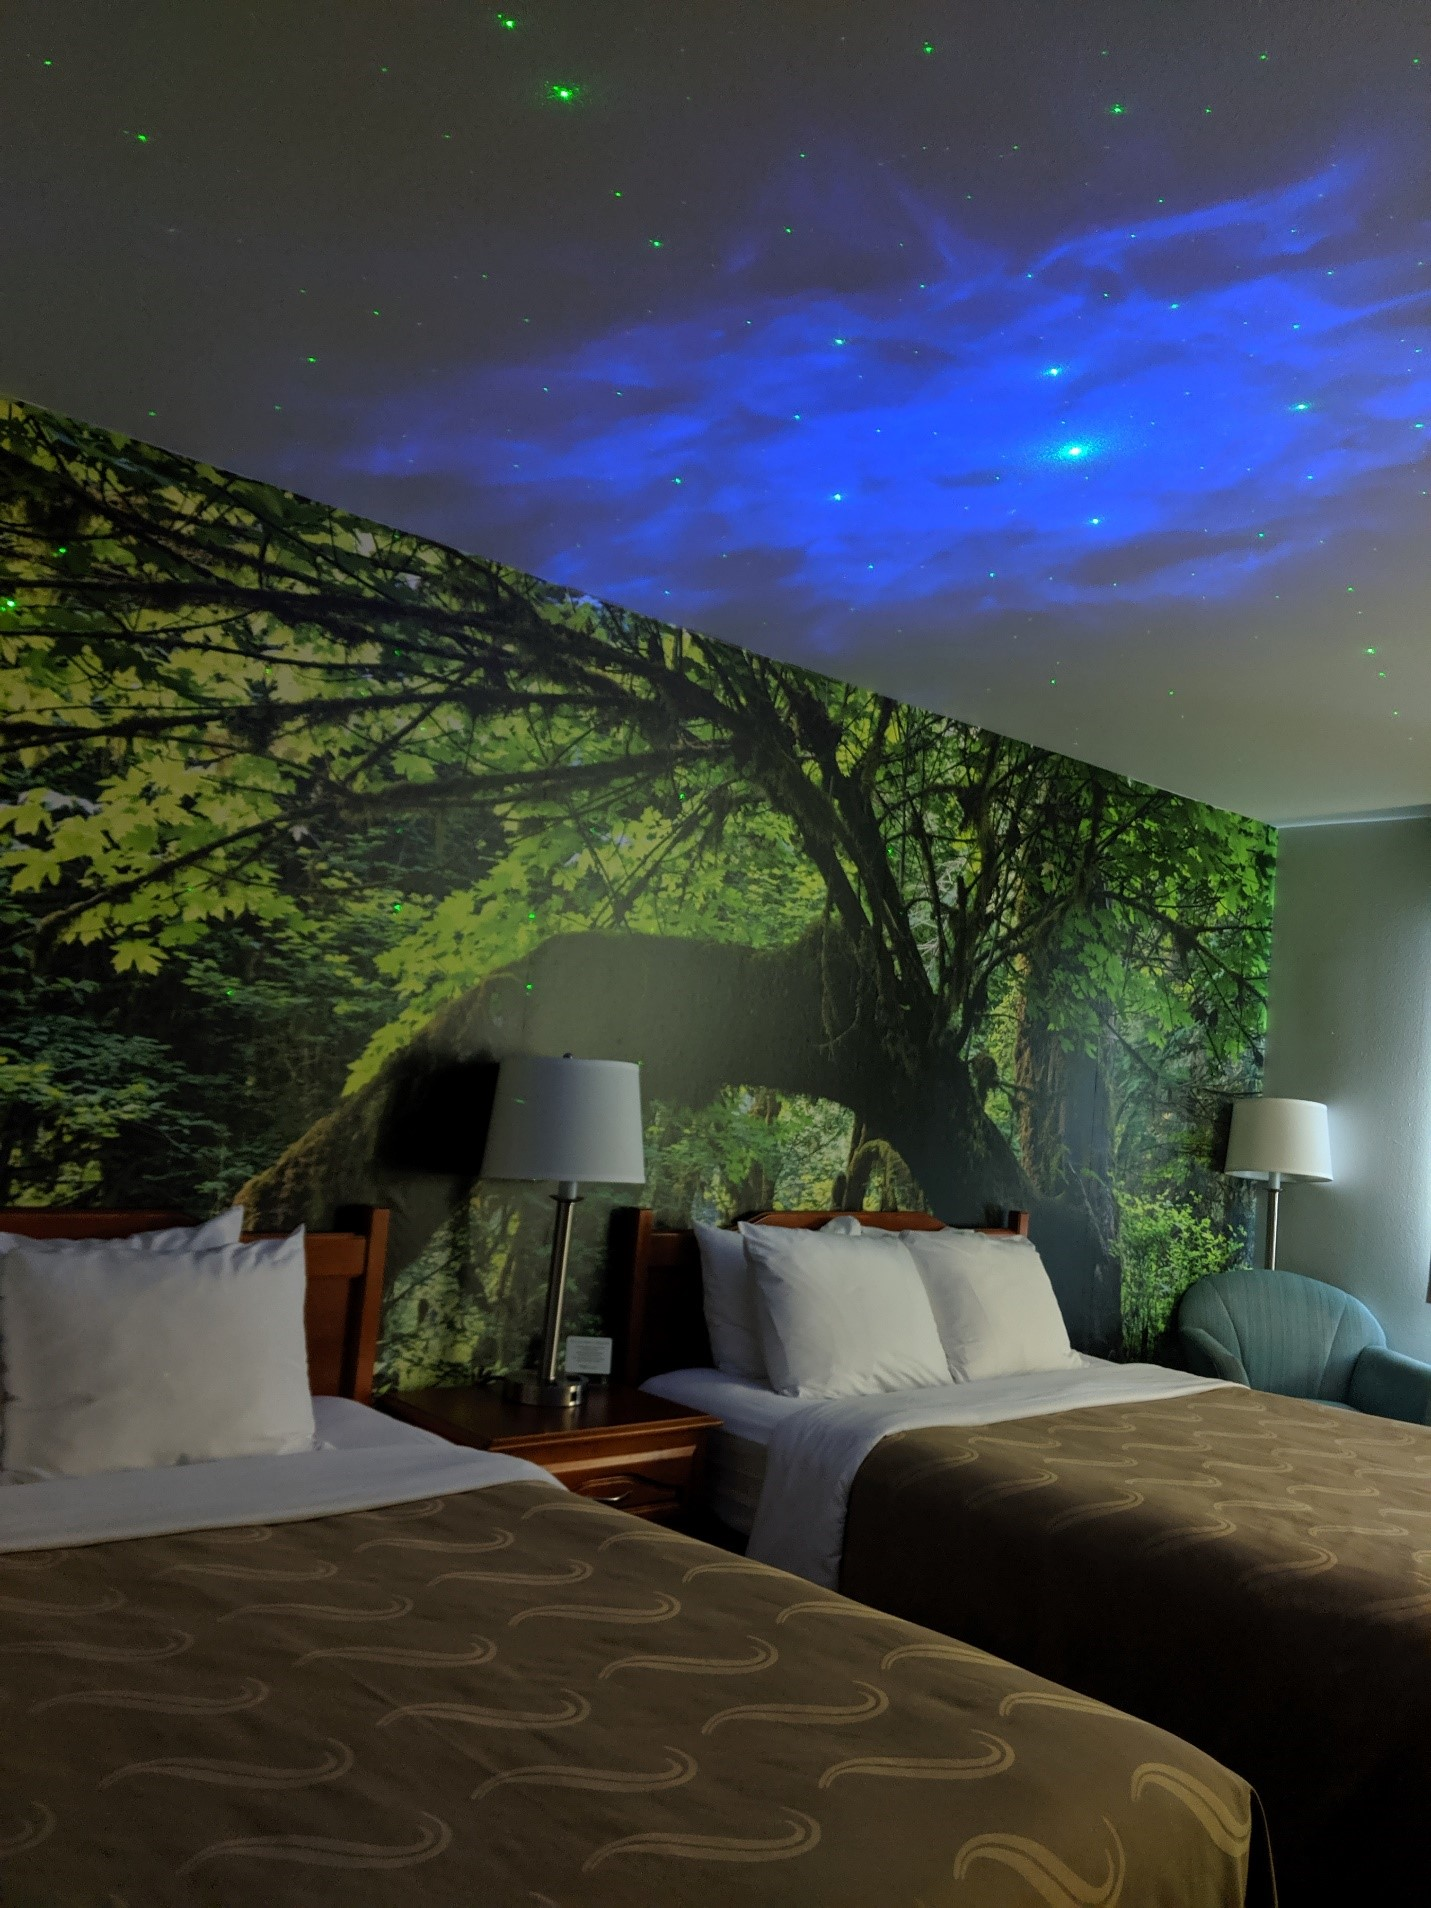 A double queen room at the Quality Inn and Suites in Sequim Washington with a mural of the national forest on the wall.